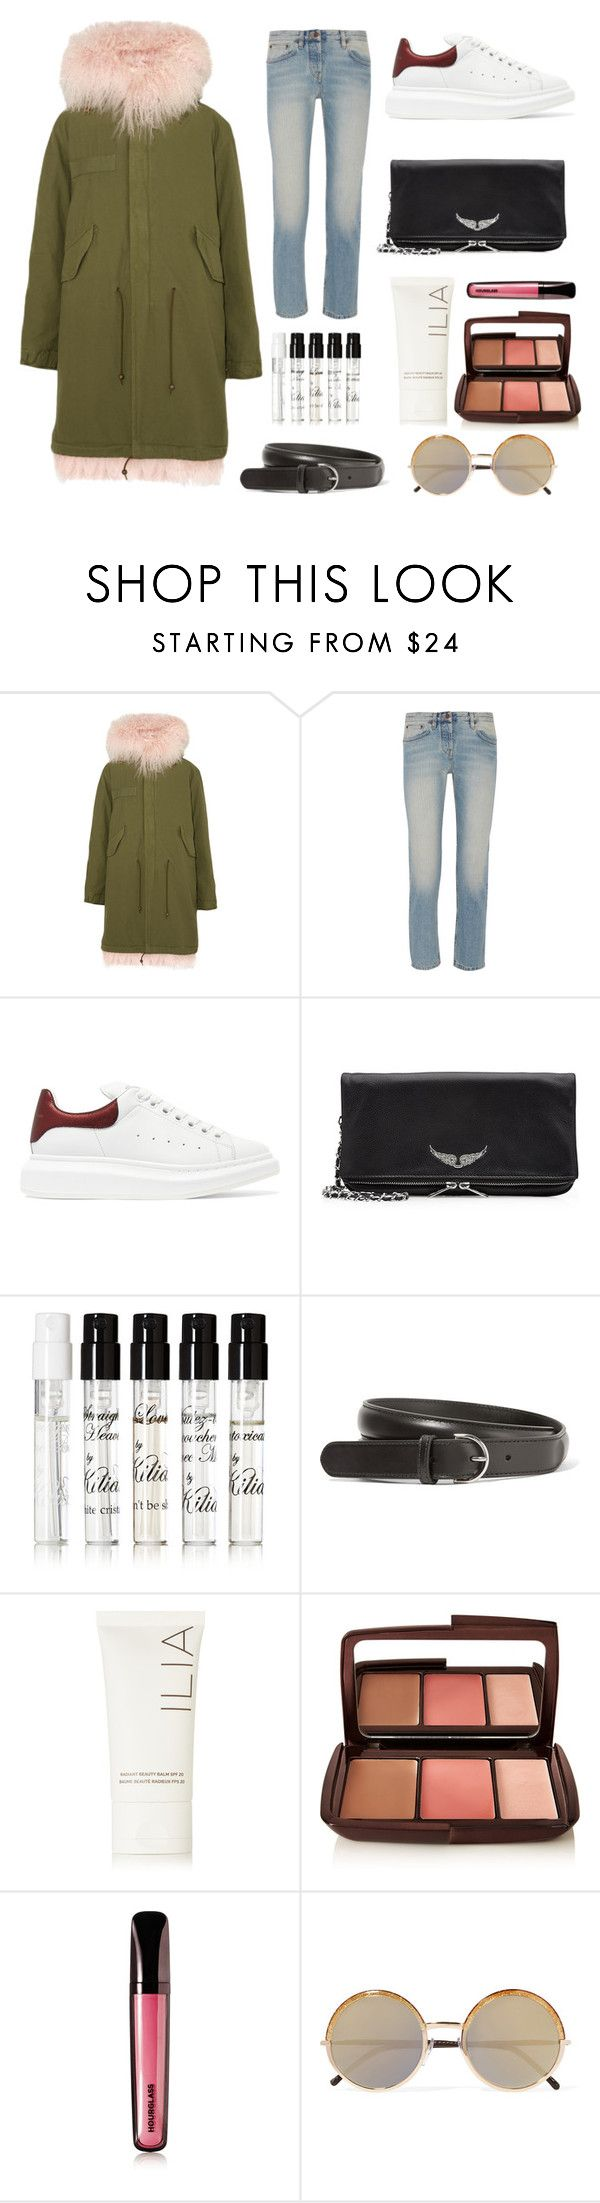 """PRE-FALL/WINTER 2016-2017"" by alice-cxii ❤ liked on Polyvore featuring Mr & Mrs Italy, The Row, Alexander McQueen, Zadig & Voltaire, Kilian, Acne Studios, Ilia, Hourglass Cosmetics and Cutler and Gross"